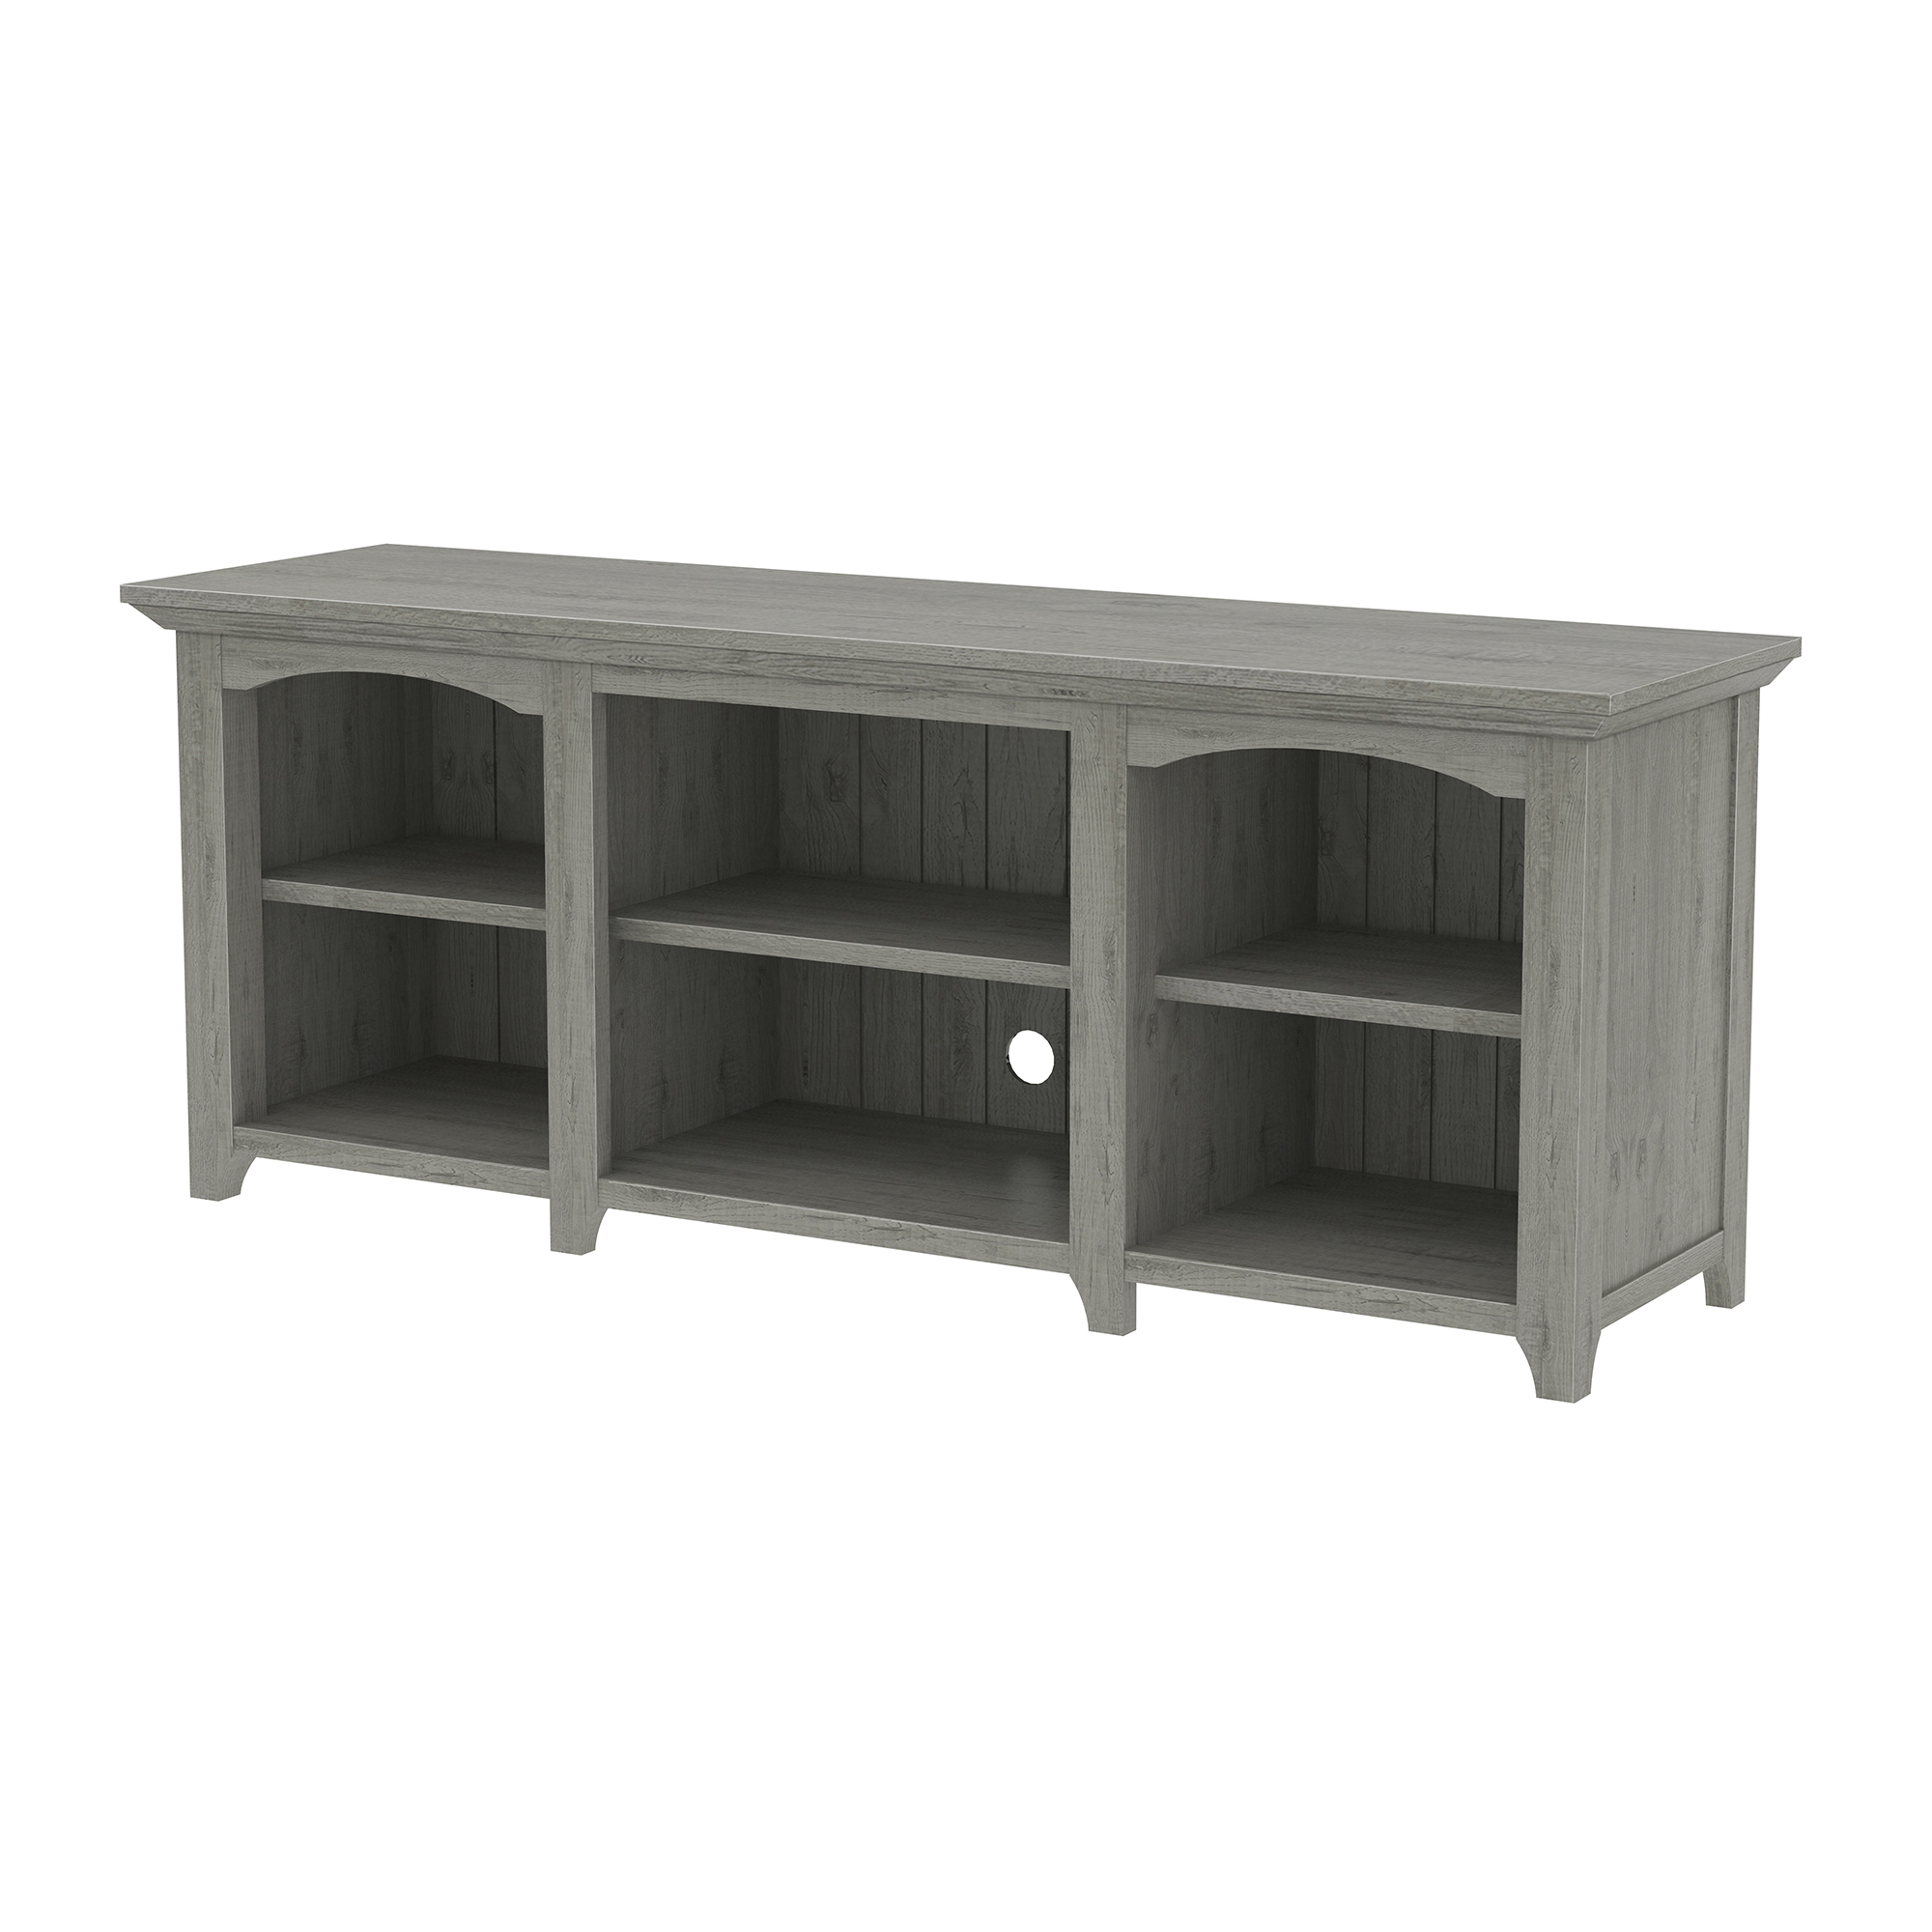 Flemington Gray Oak TV Stand for TVs up to 60""